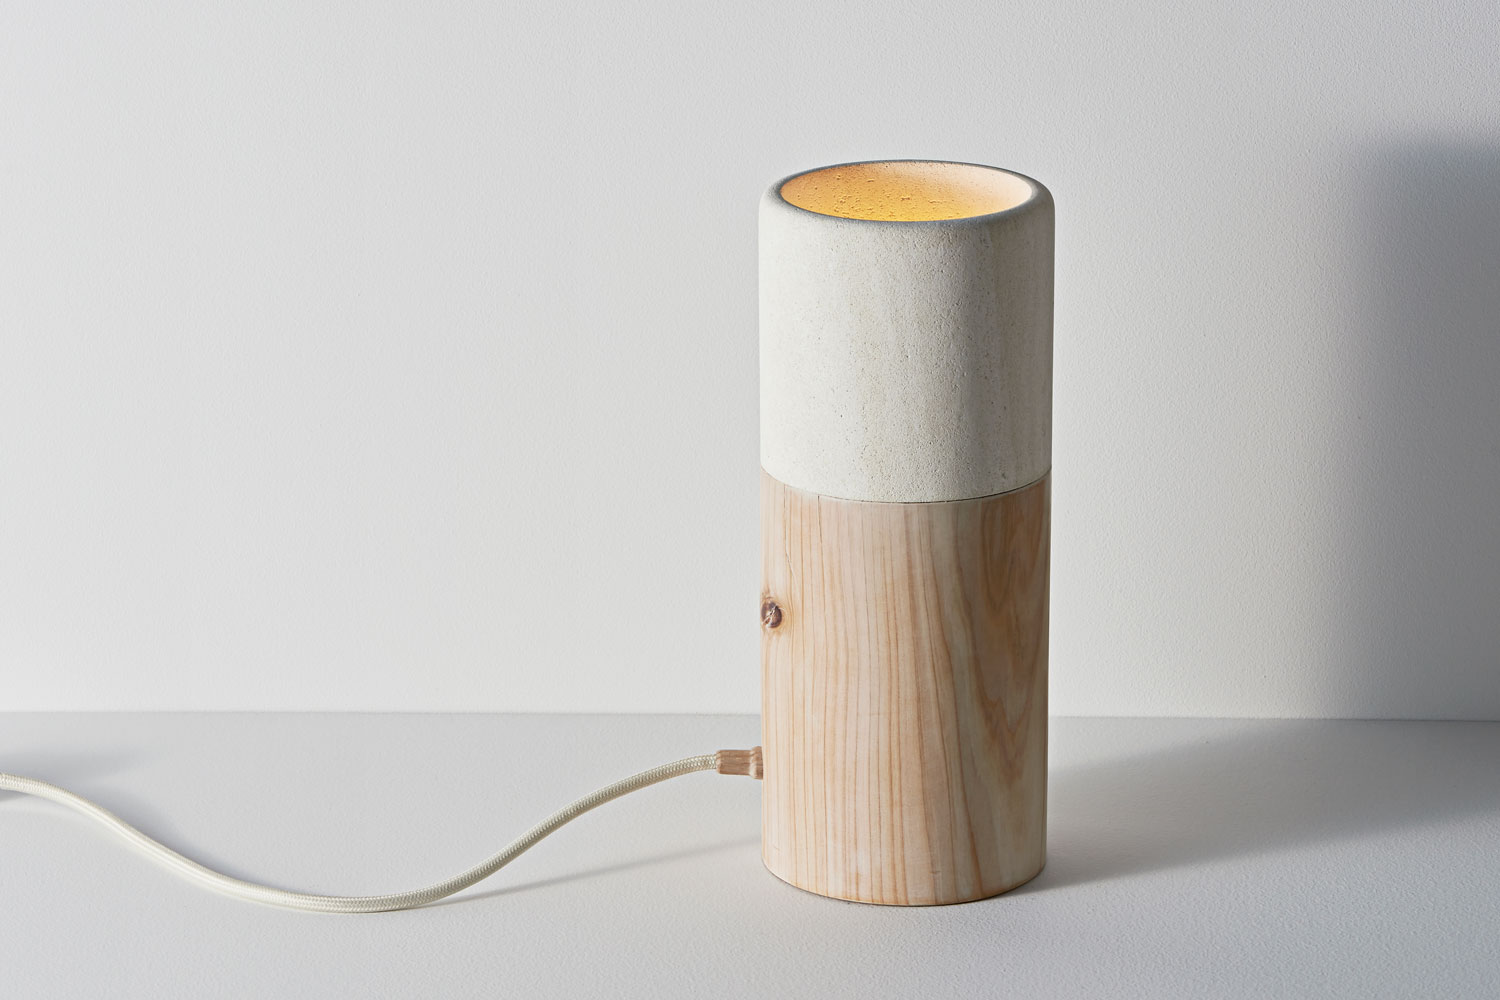 Object Future Australian Design Exhibition // Matchstick Lamp by Hugh Altschwager   Yellowtrace